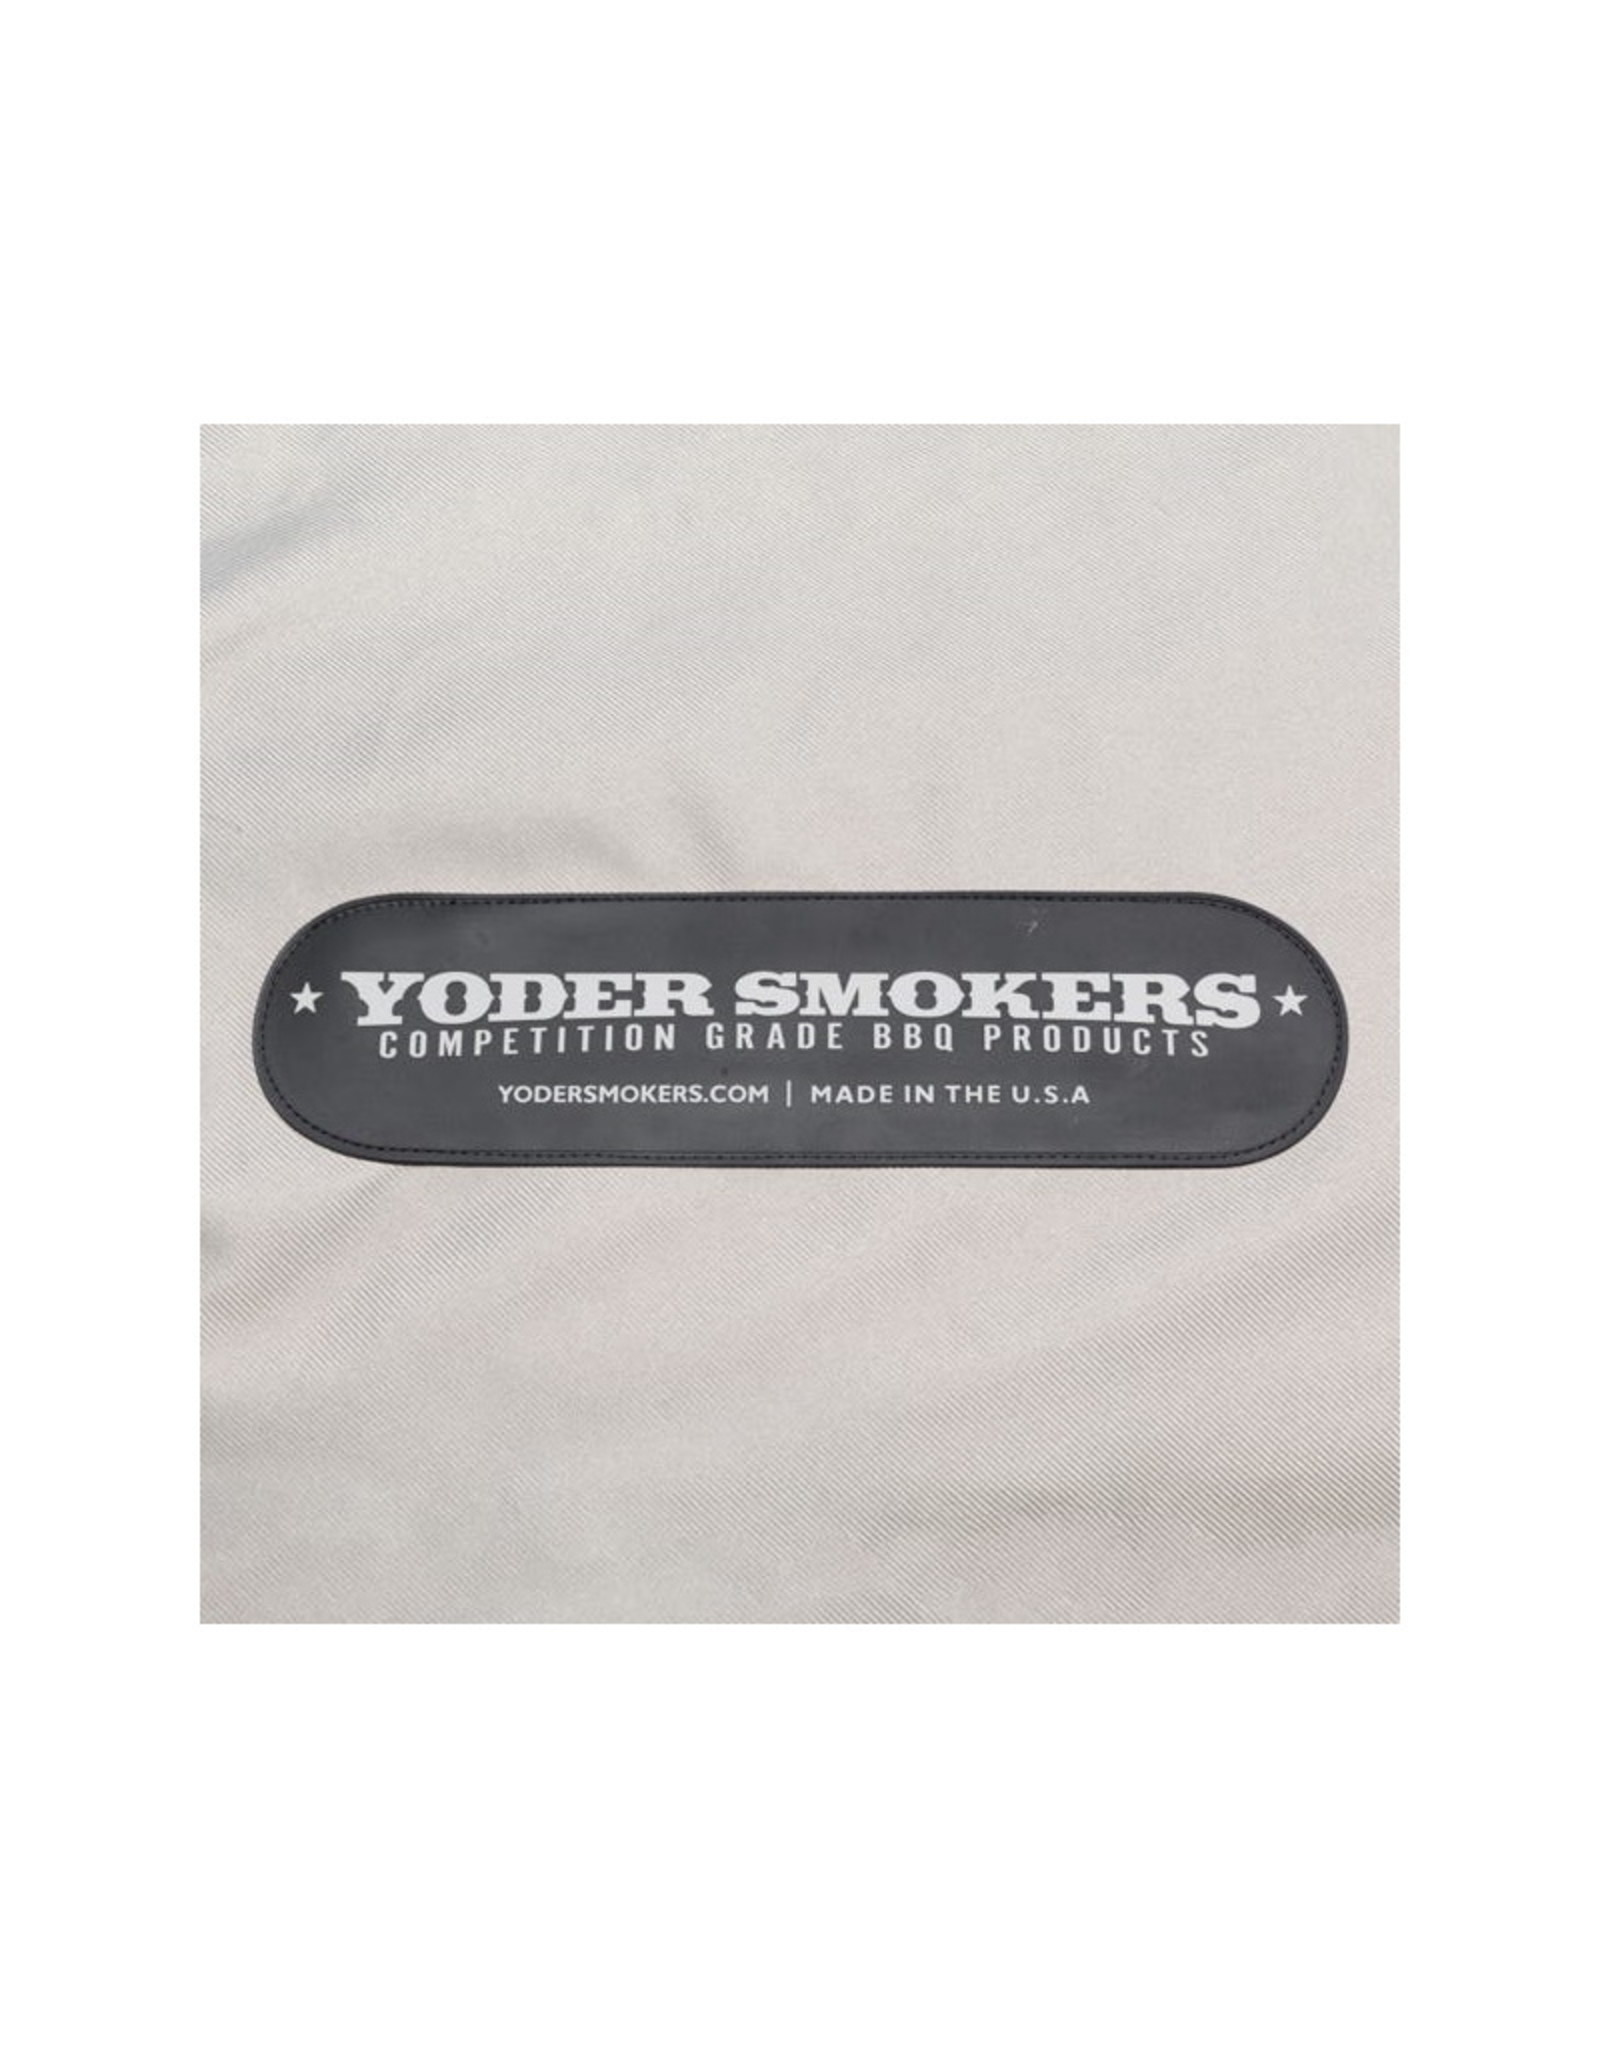 Yoder Smokers YS480 Afdekhoes